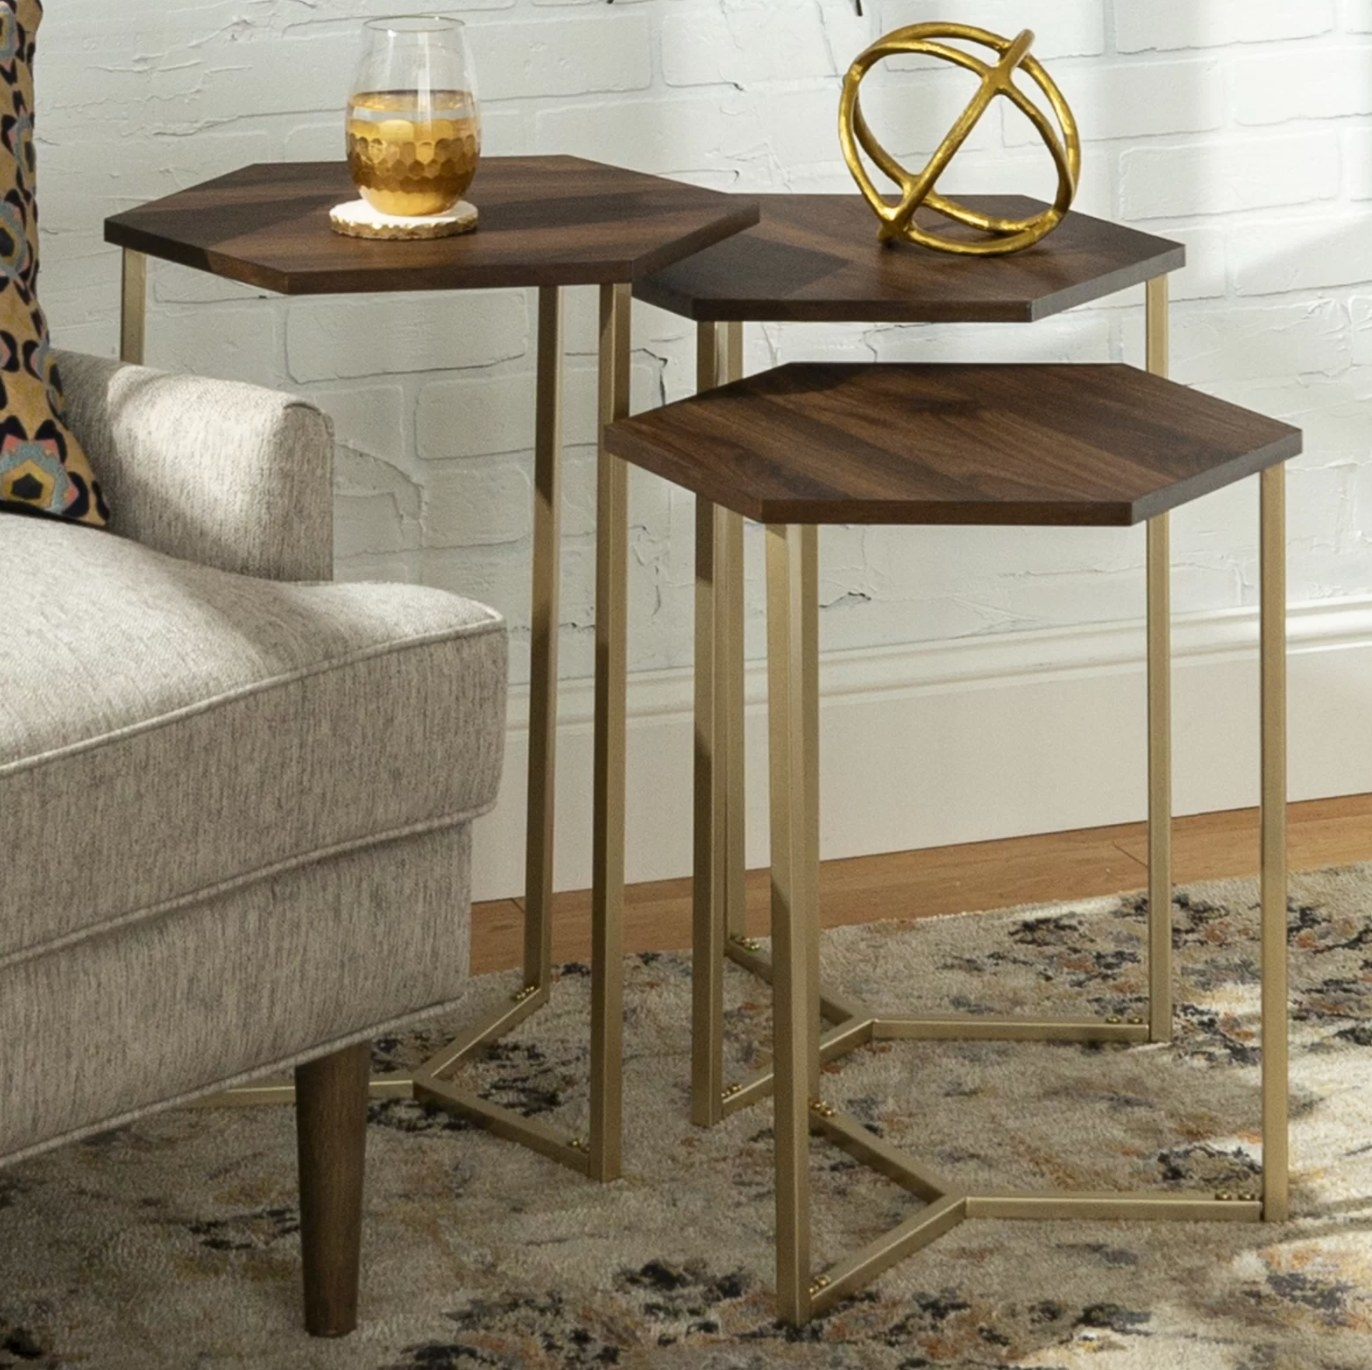 The set of three nesting tables in dark wood and gold holding a glass of water